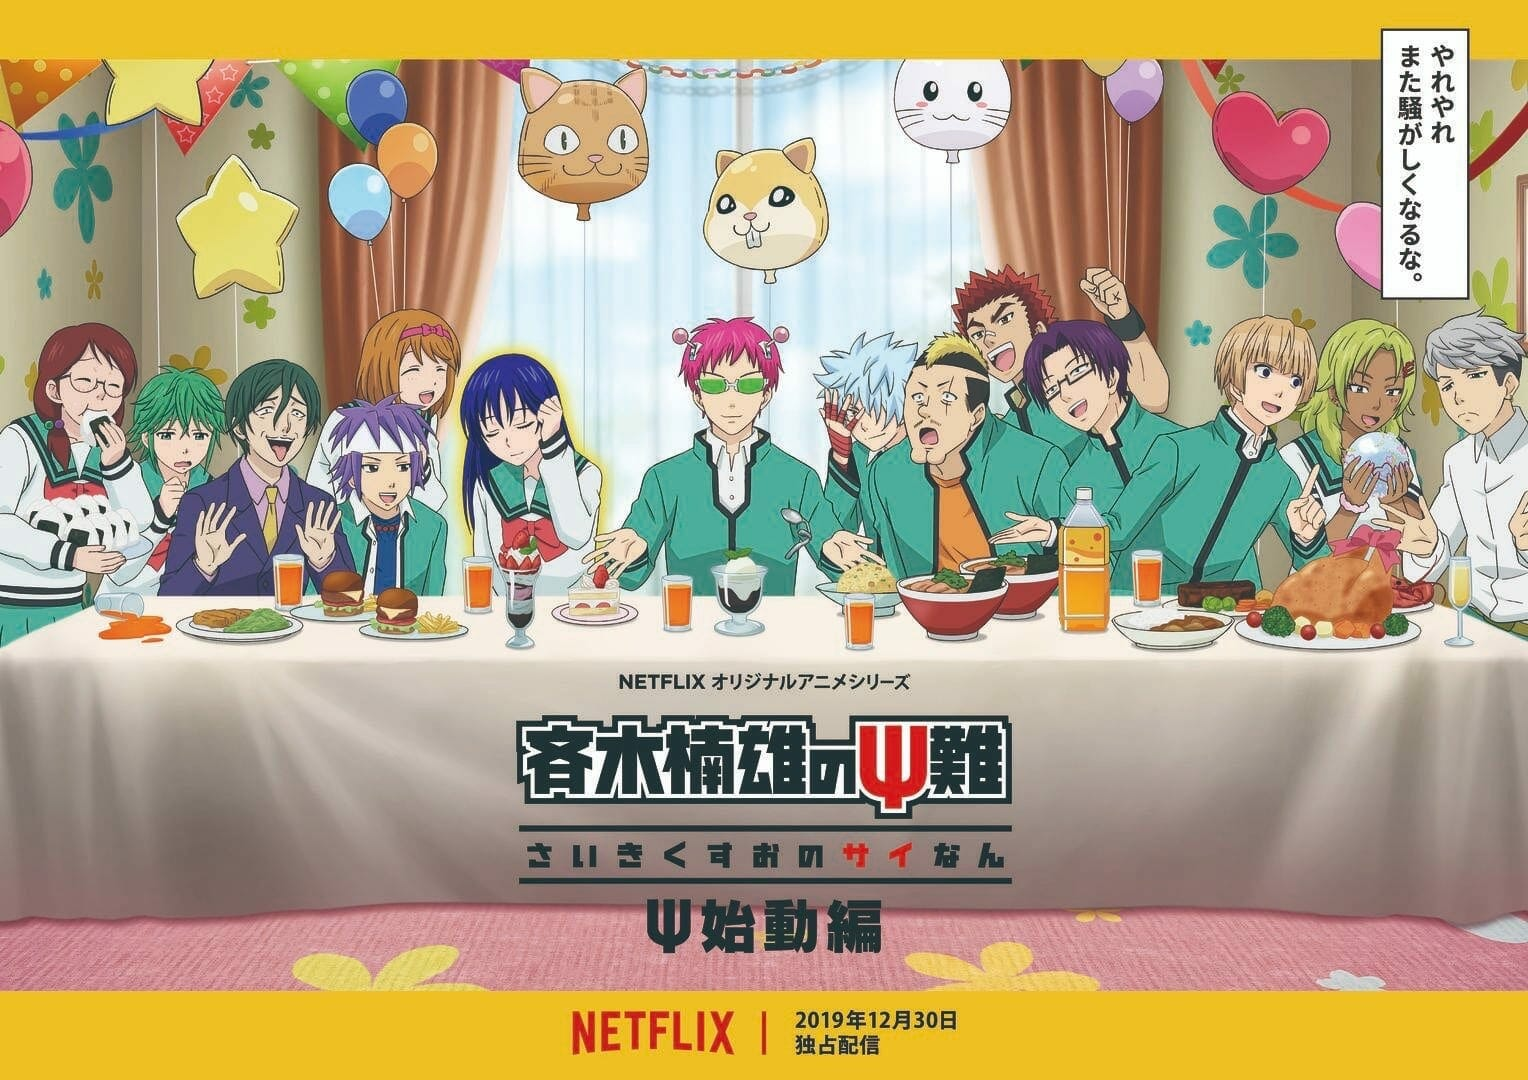 20+ The Disastrous Life Of Saiki K Game  Pictures